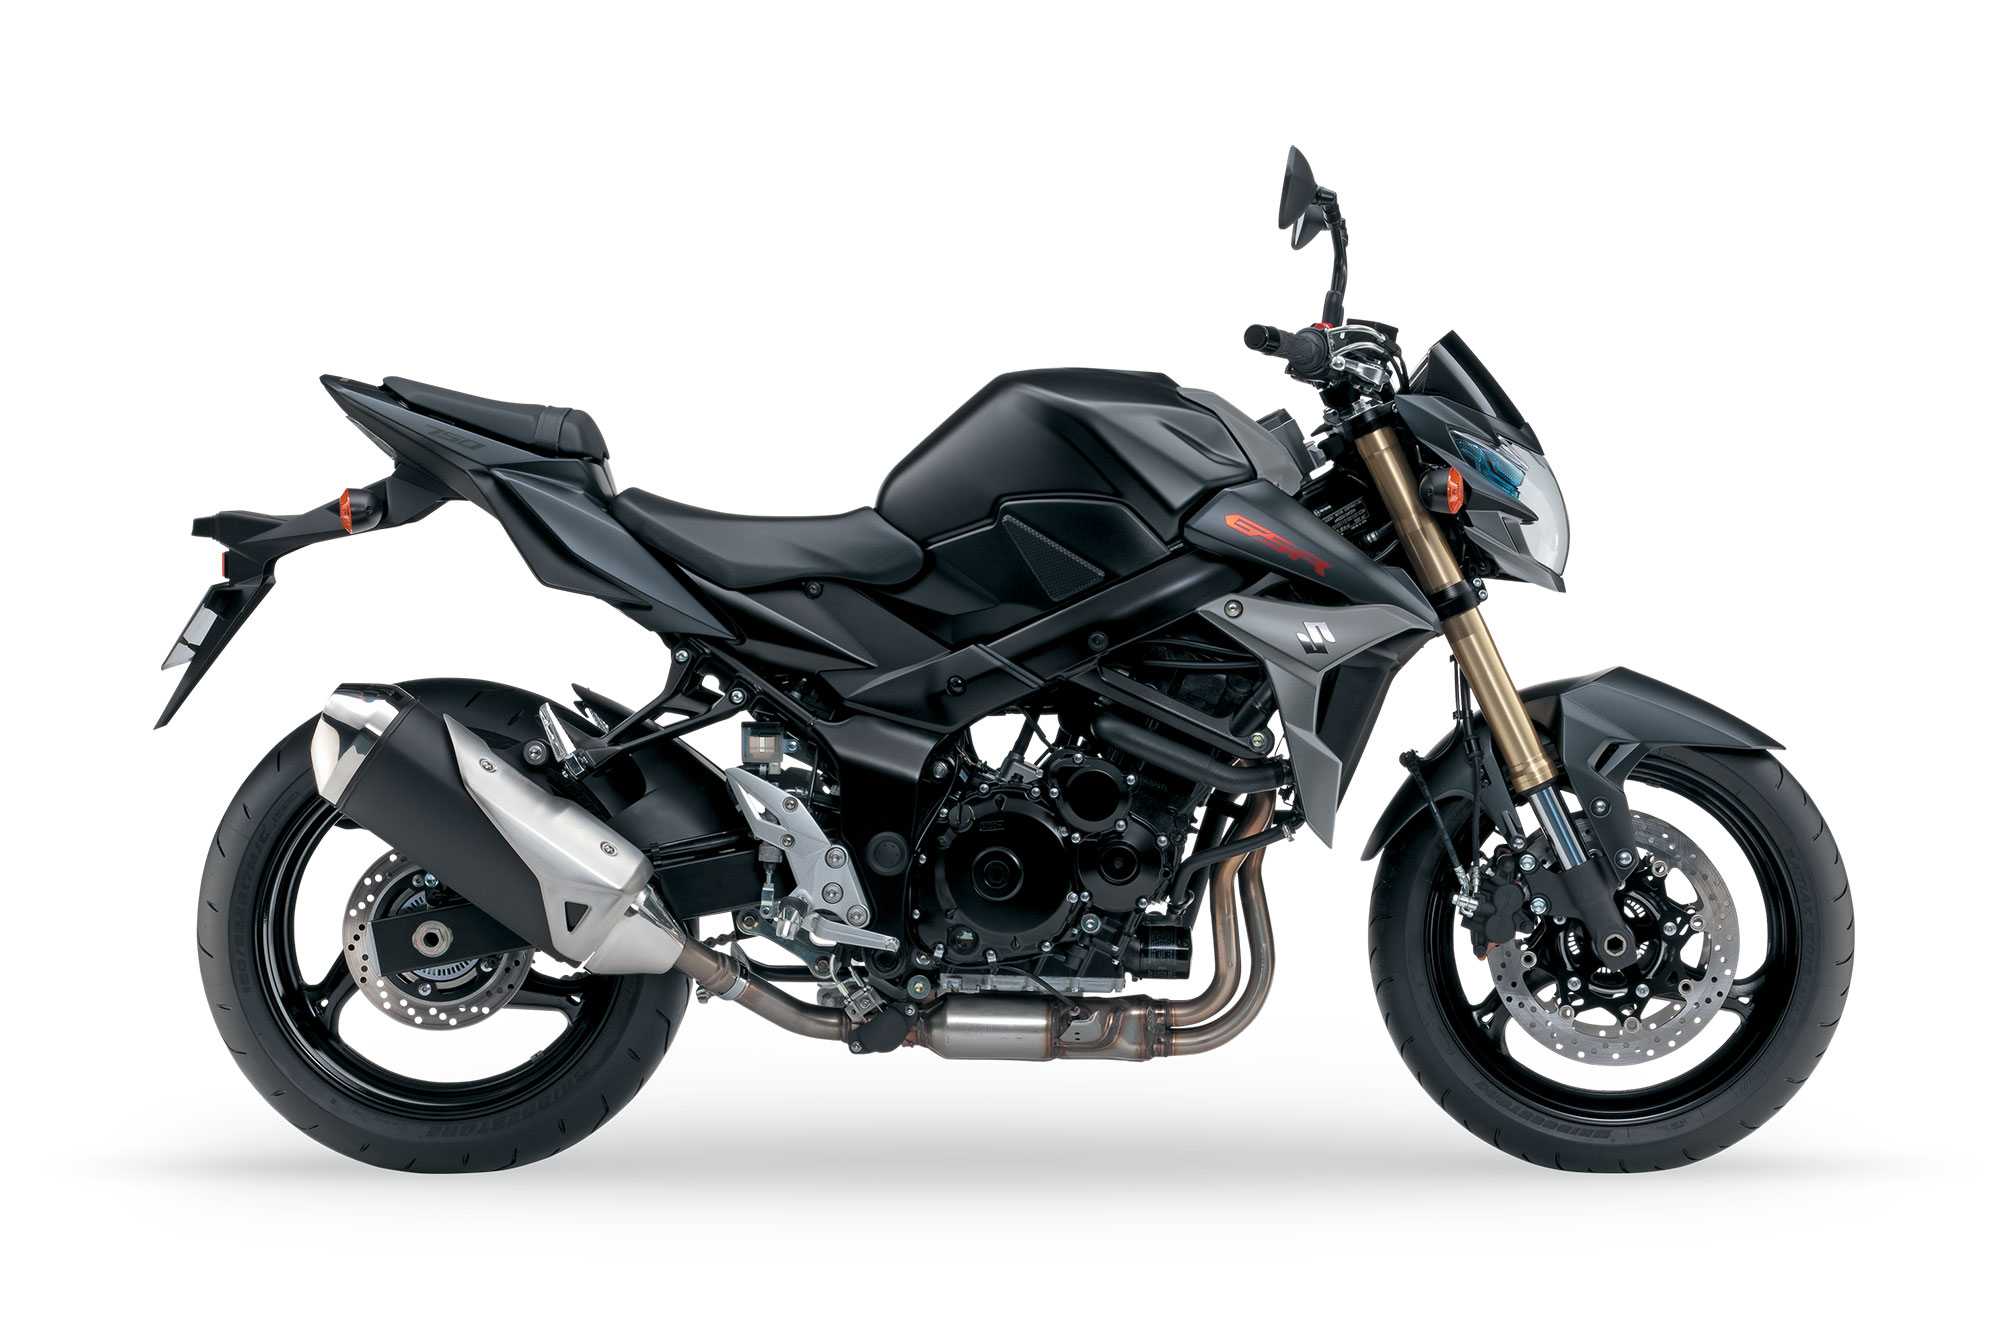 2013 suzuki gsr 750 pics specs and information. Black Bedroom Furniture Sets. Home Design Ideas